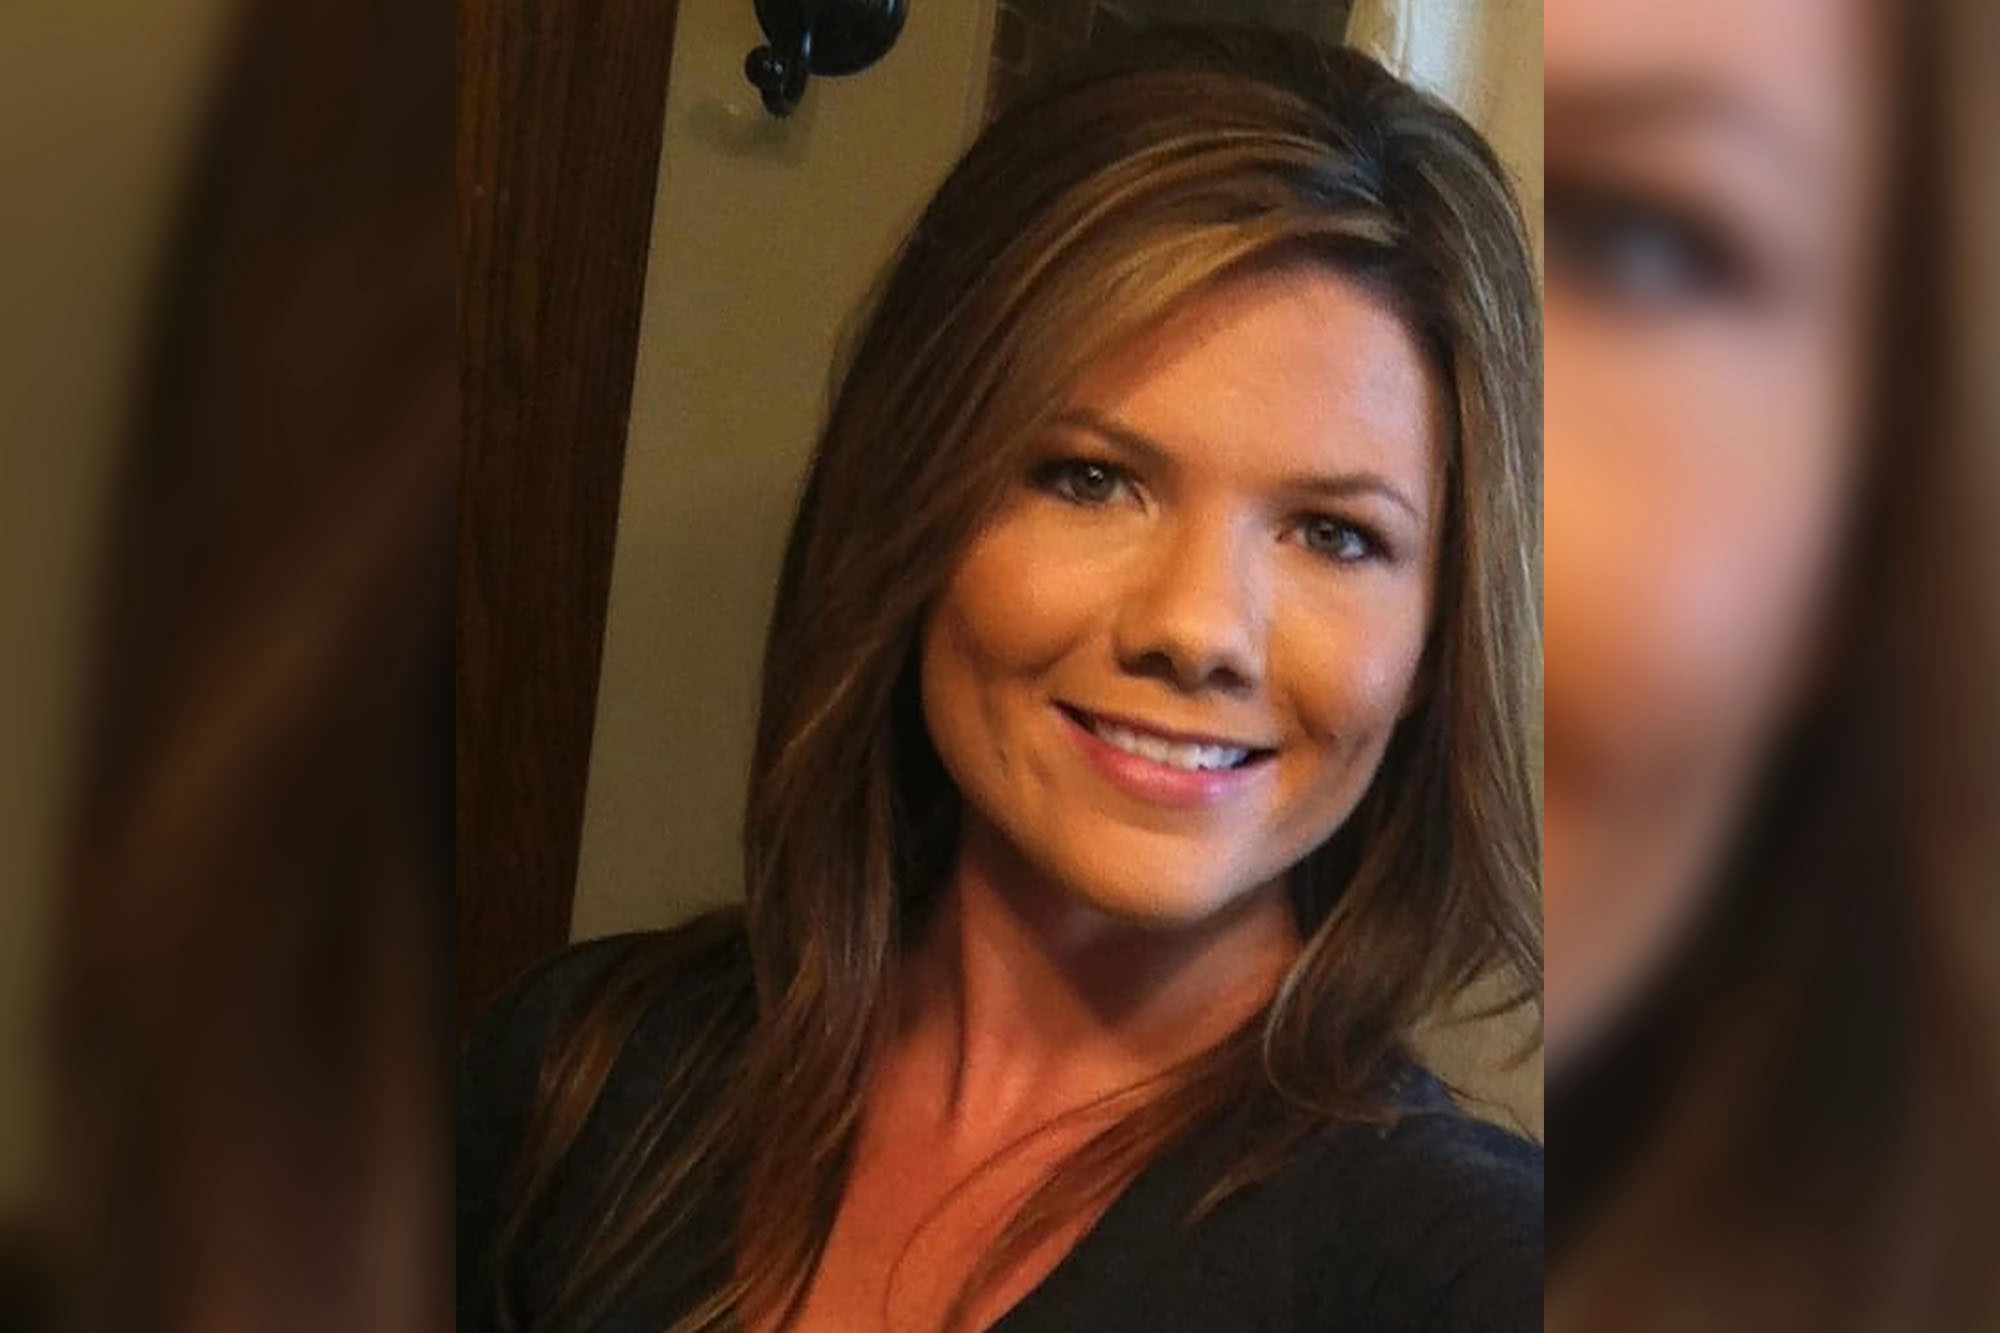 Text sent from missing mom's phone days after she vanished